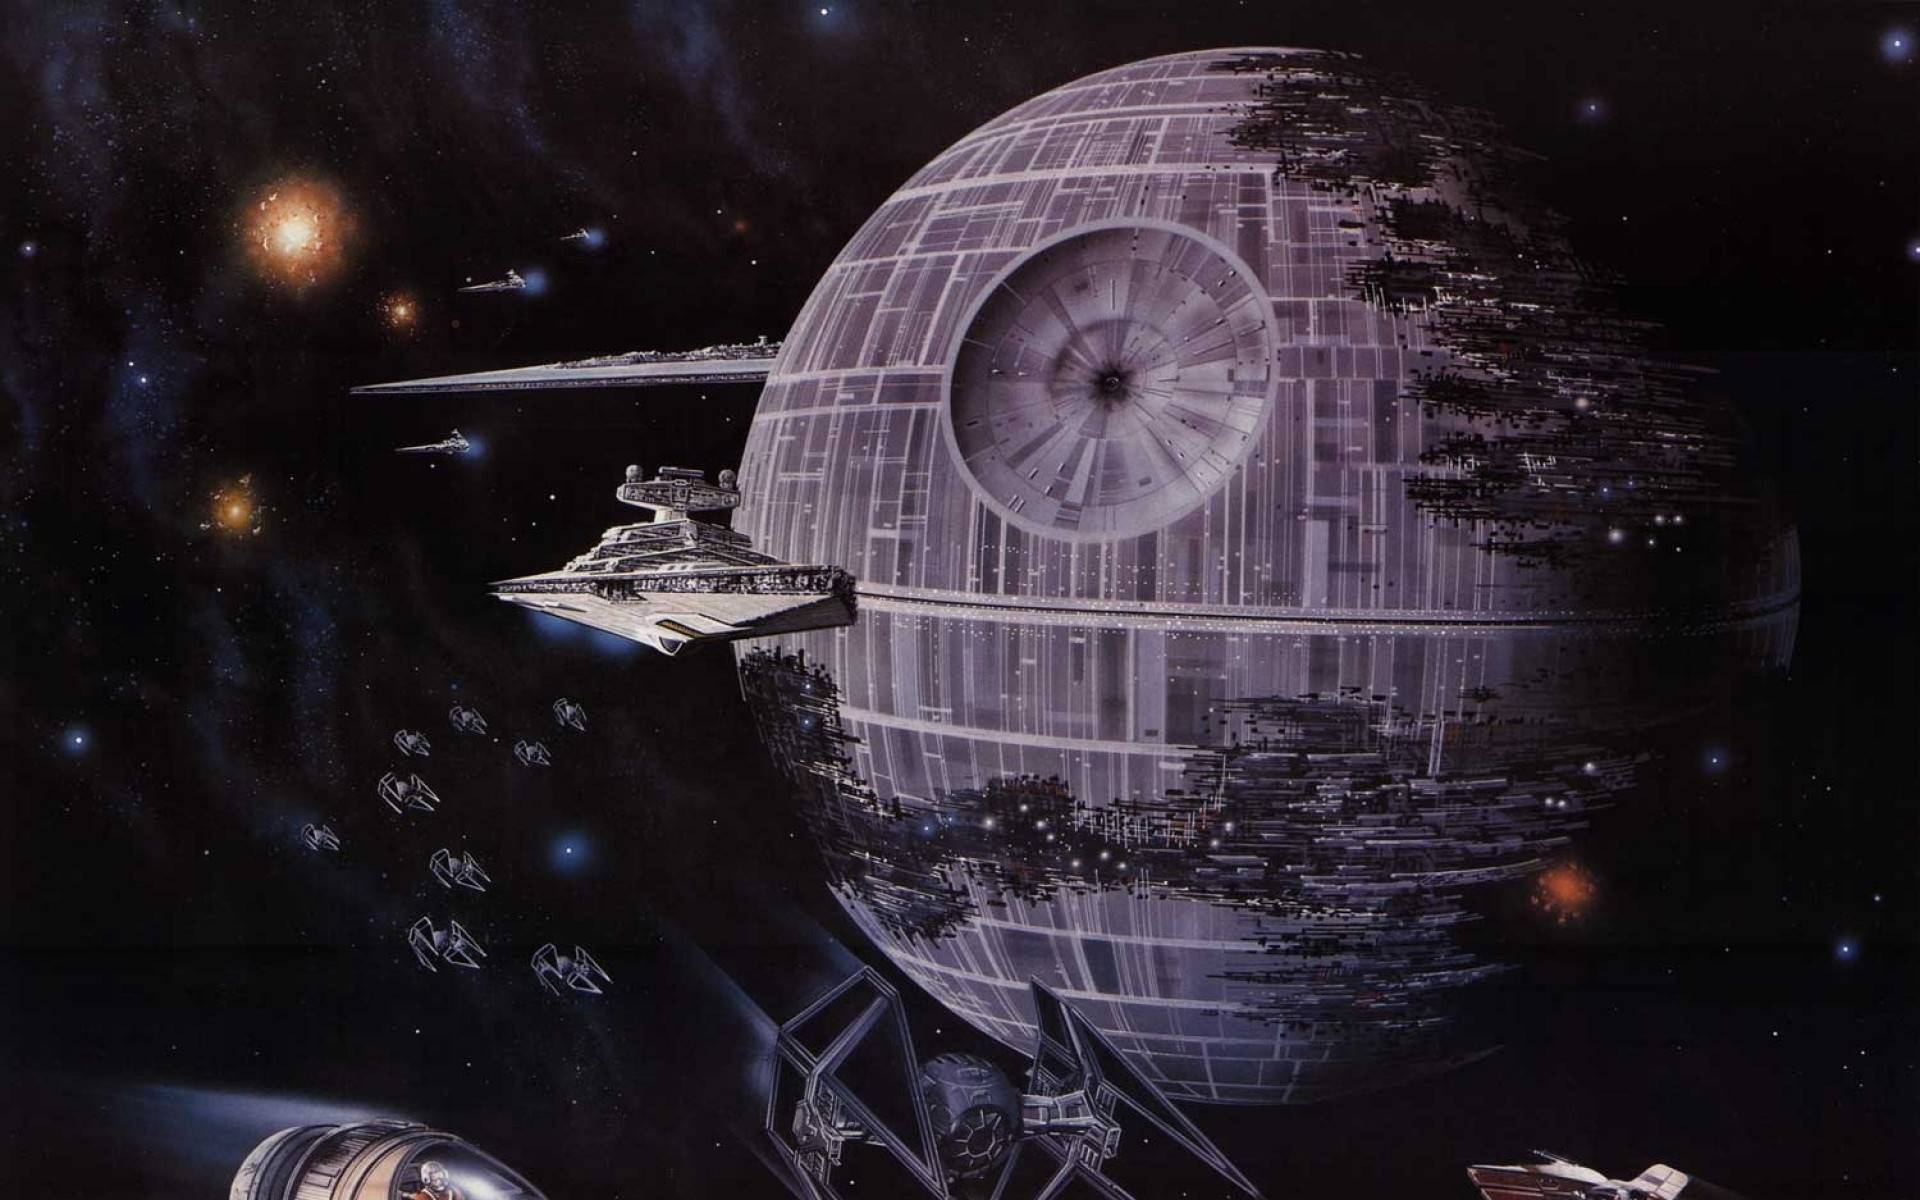 Star Wars Death Star Hd Background Wallpaper Hi Res Star Wars Posters 323772 Hd Wallpaper Backgrounds Download